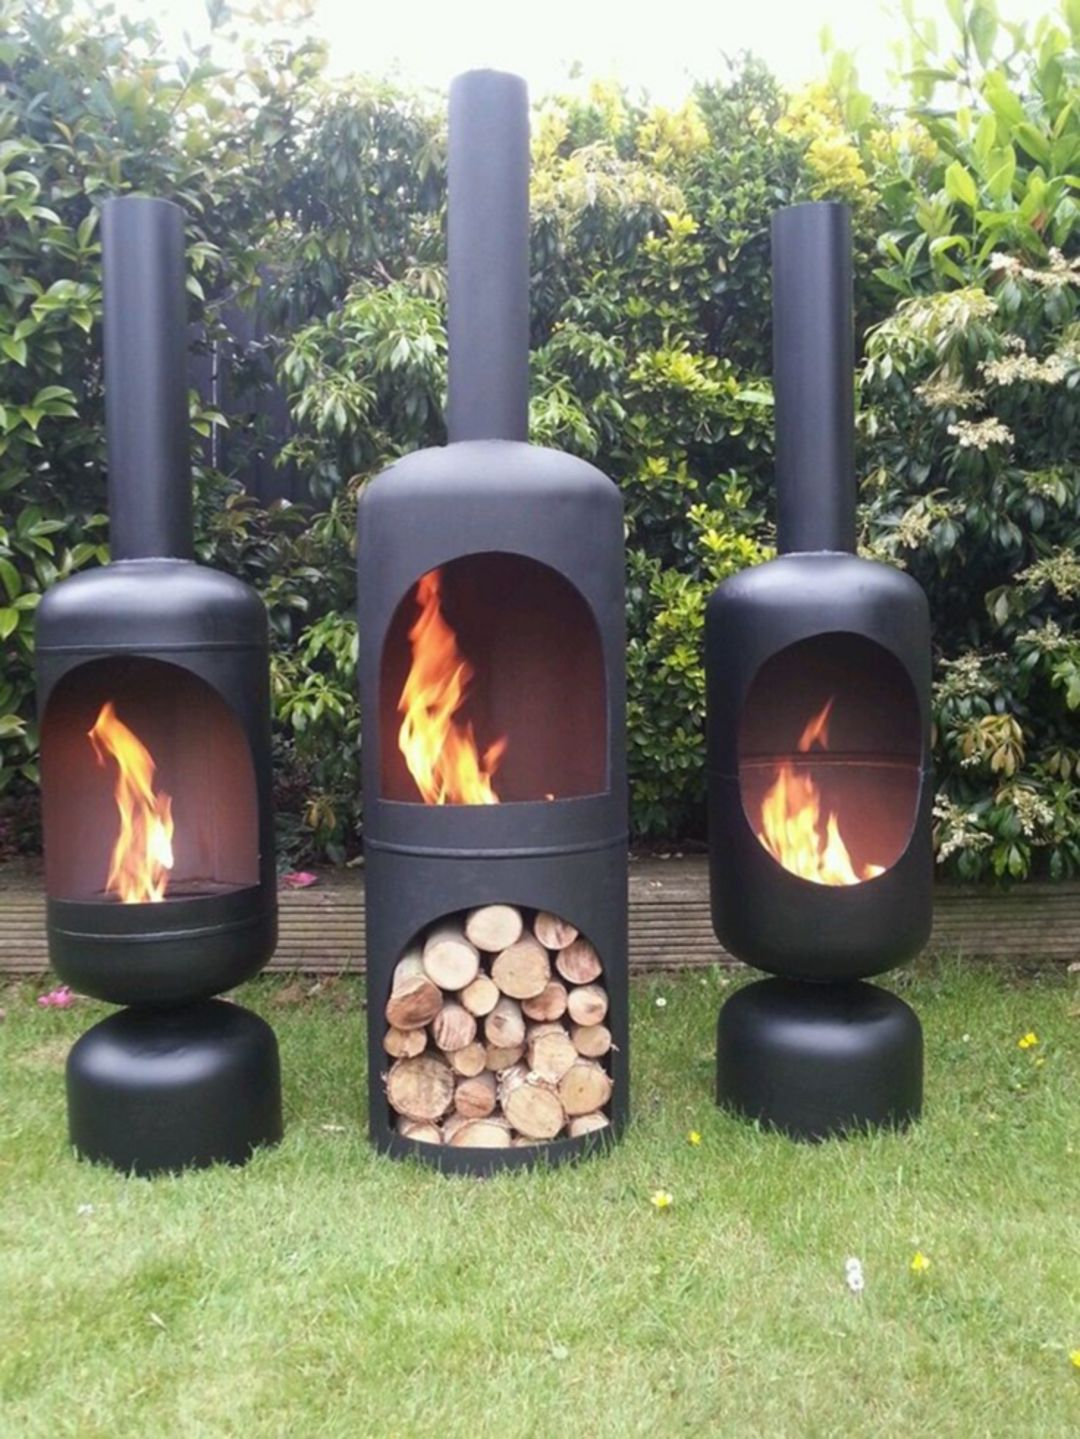 12+ Lovely Outdoor Fireplace Ideas For Your Home Outdoor | Gas ...